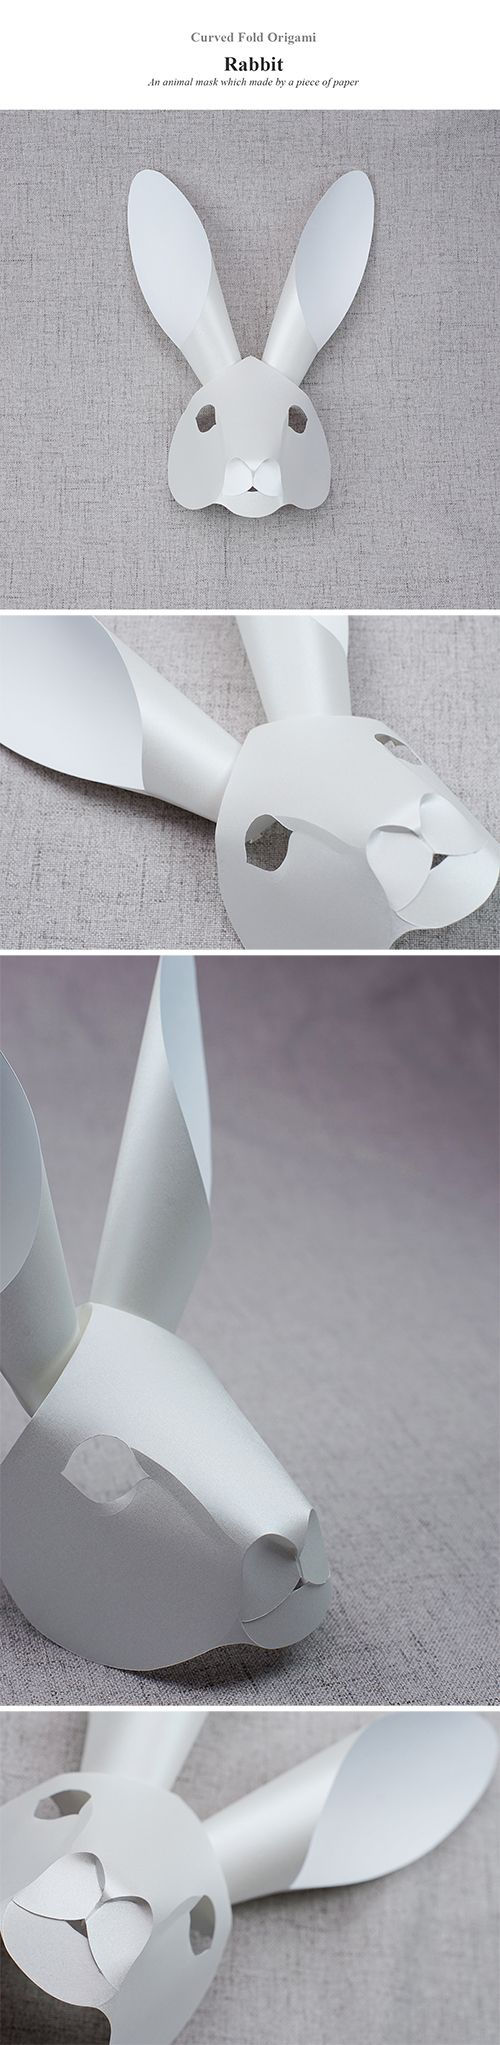 Curved Fold Origami Rabbit Animal Mask Which Made By A Piece Of Paper